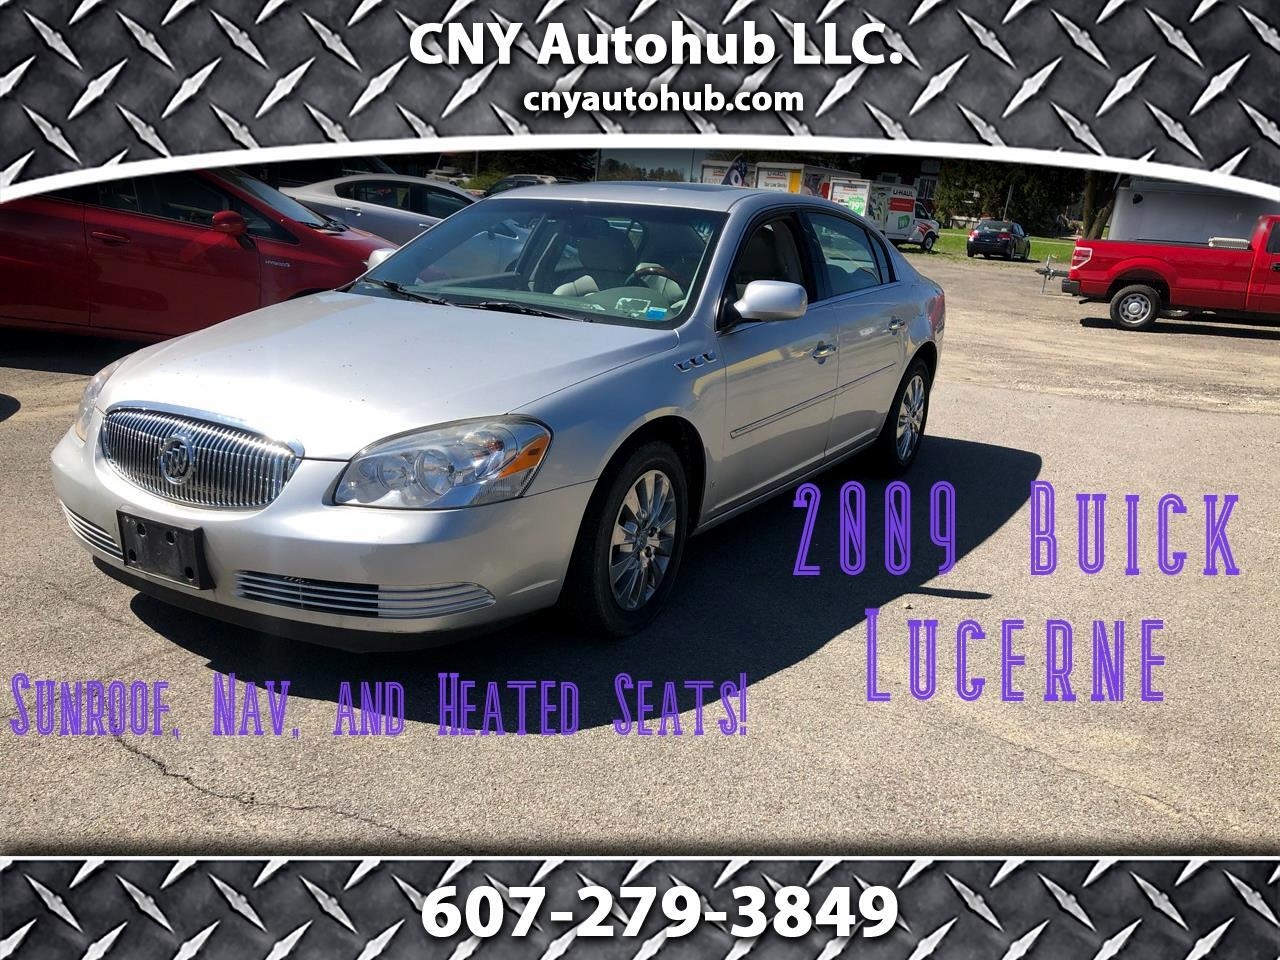 Buick Lucerne 4dr Sdn CXL Special Edition 2009